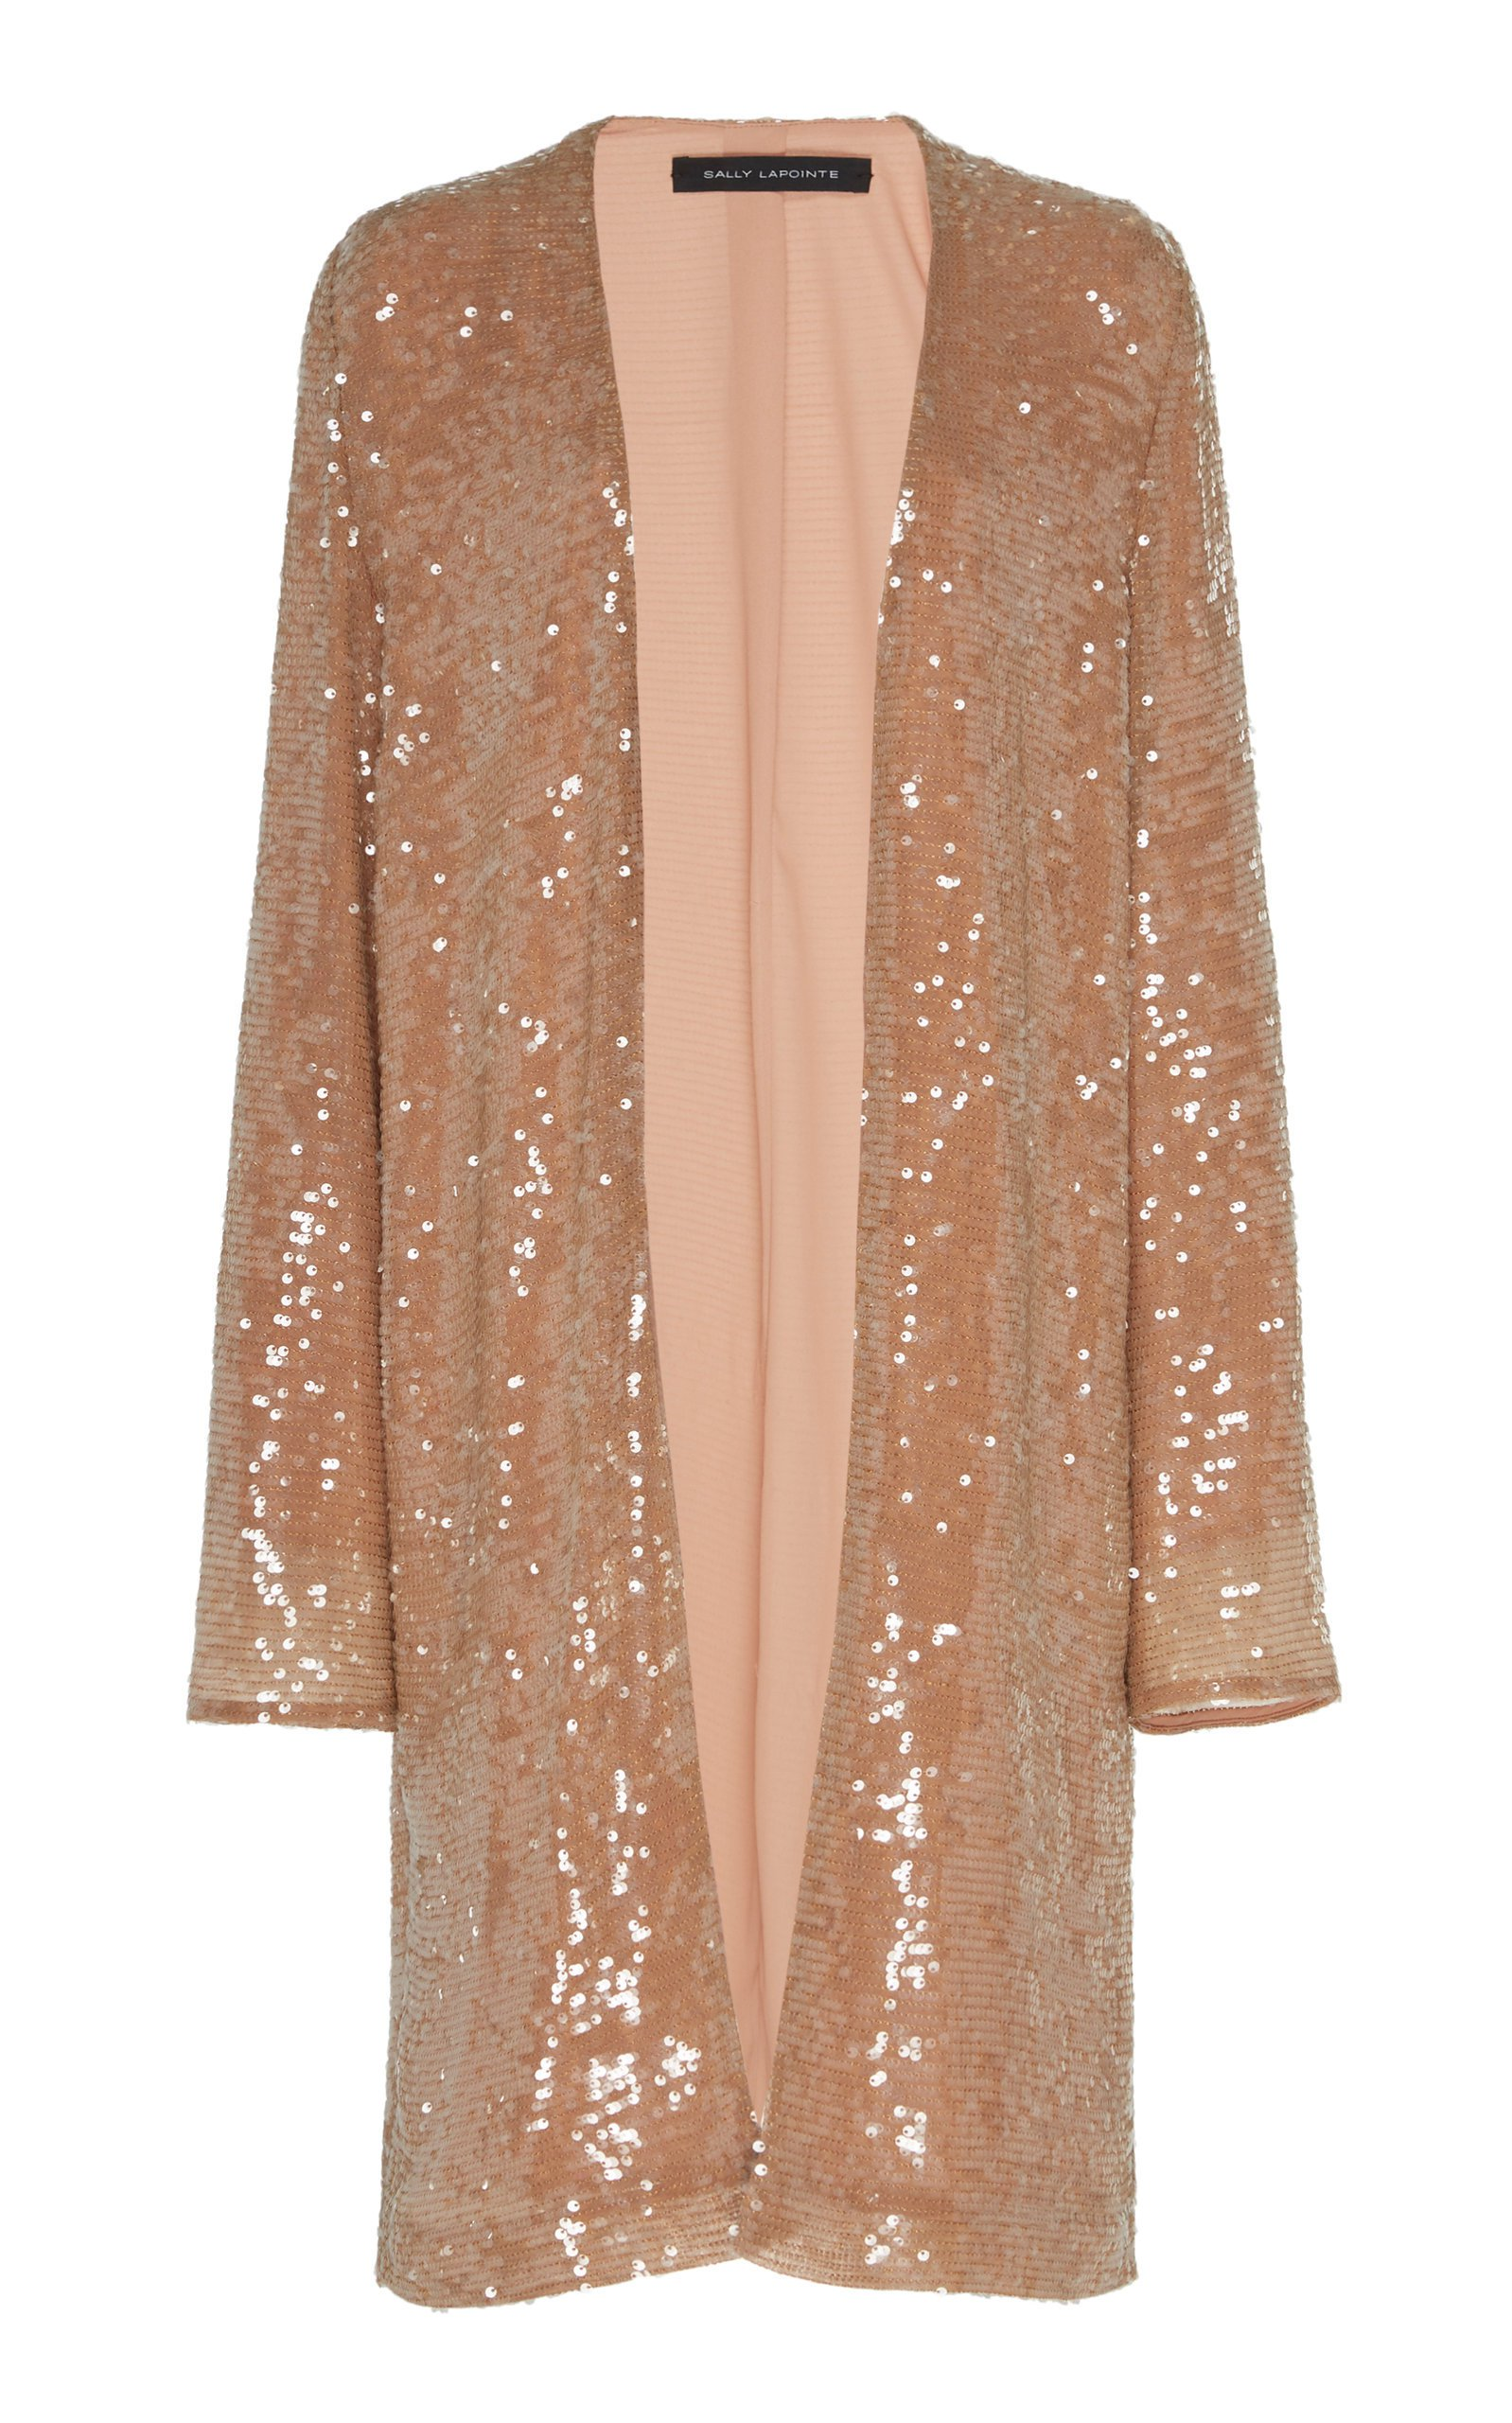 Sally LaPointe Sequin Viscose Duster